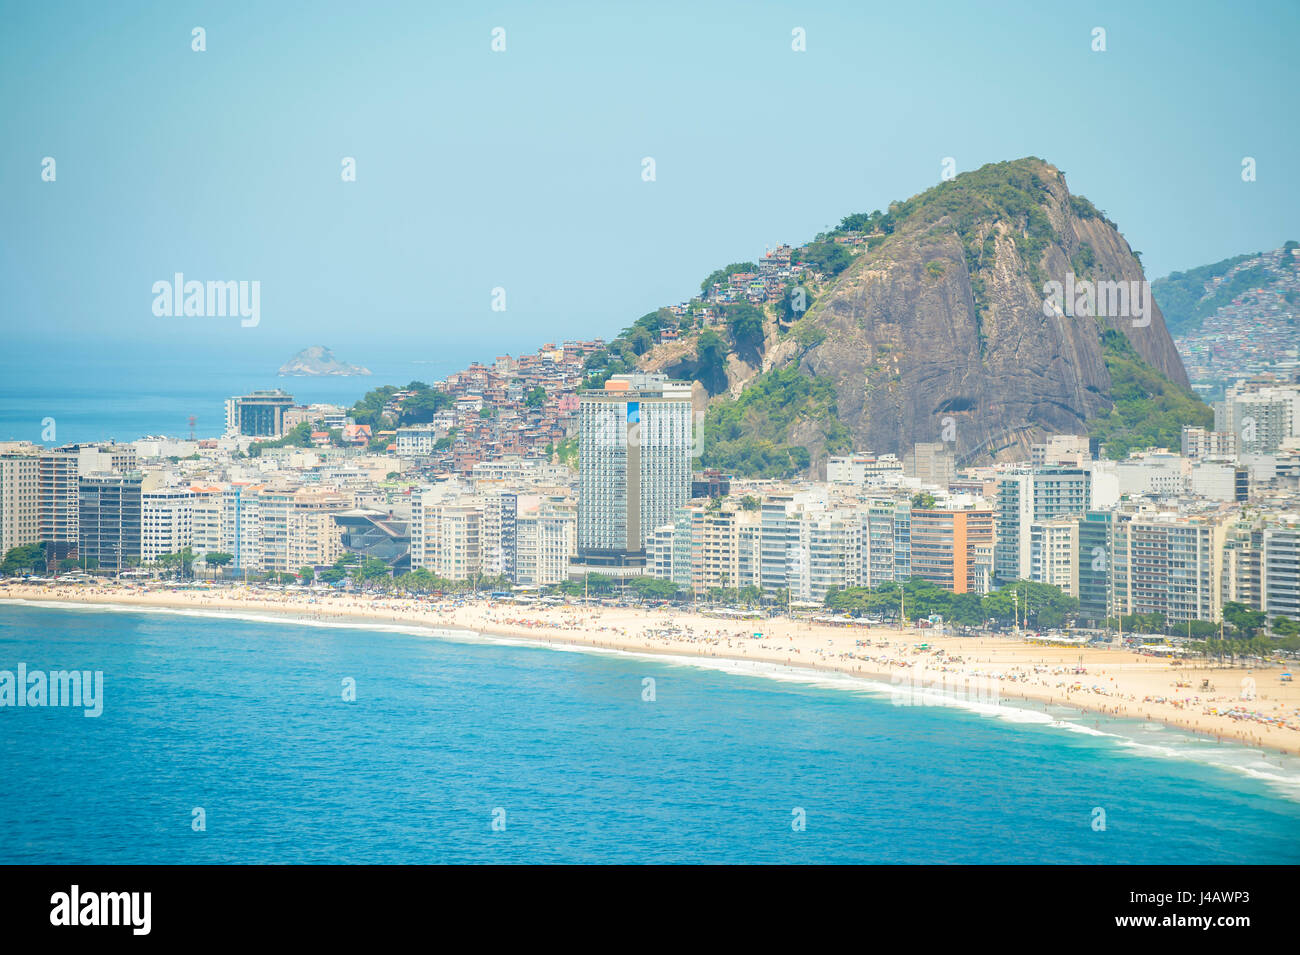 Bright scenic view of the golden crescent of Copacabana Beach with the city skyline of Rio de Janeiro, Brazil - Stock Image